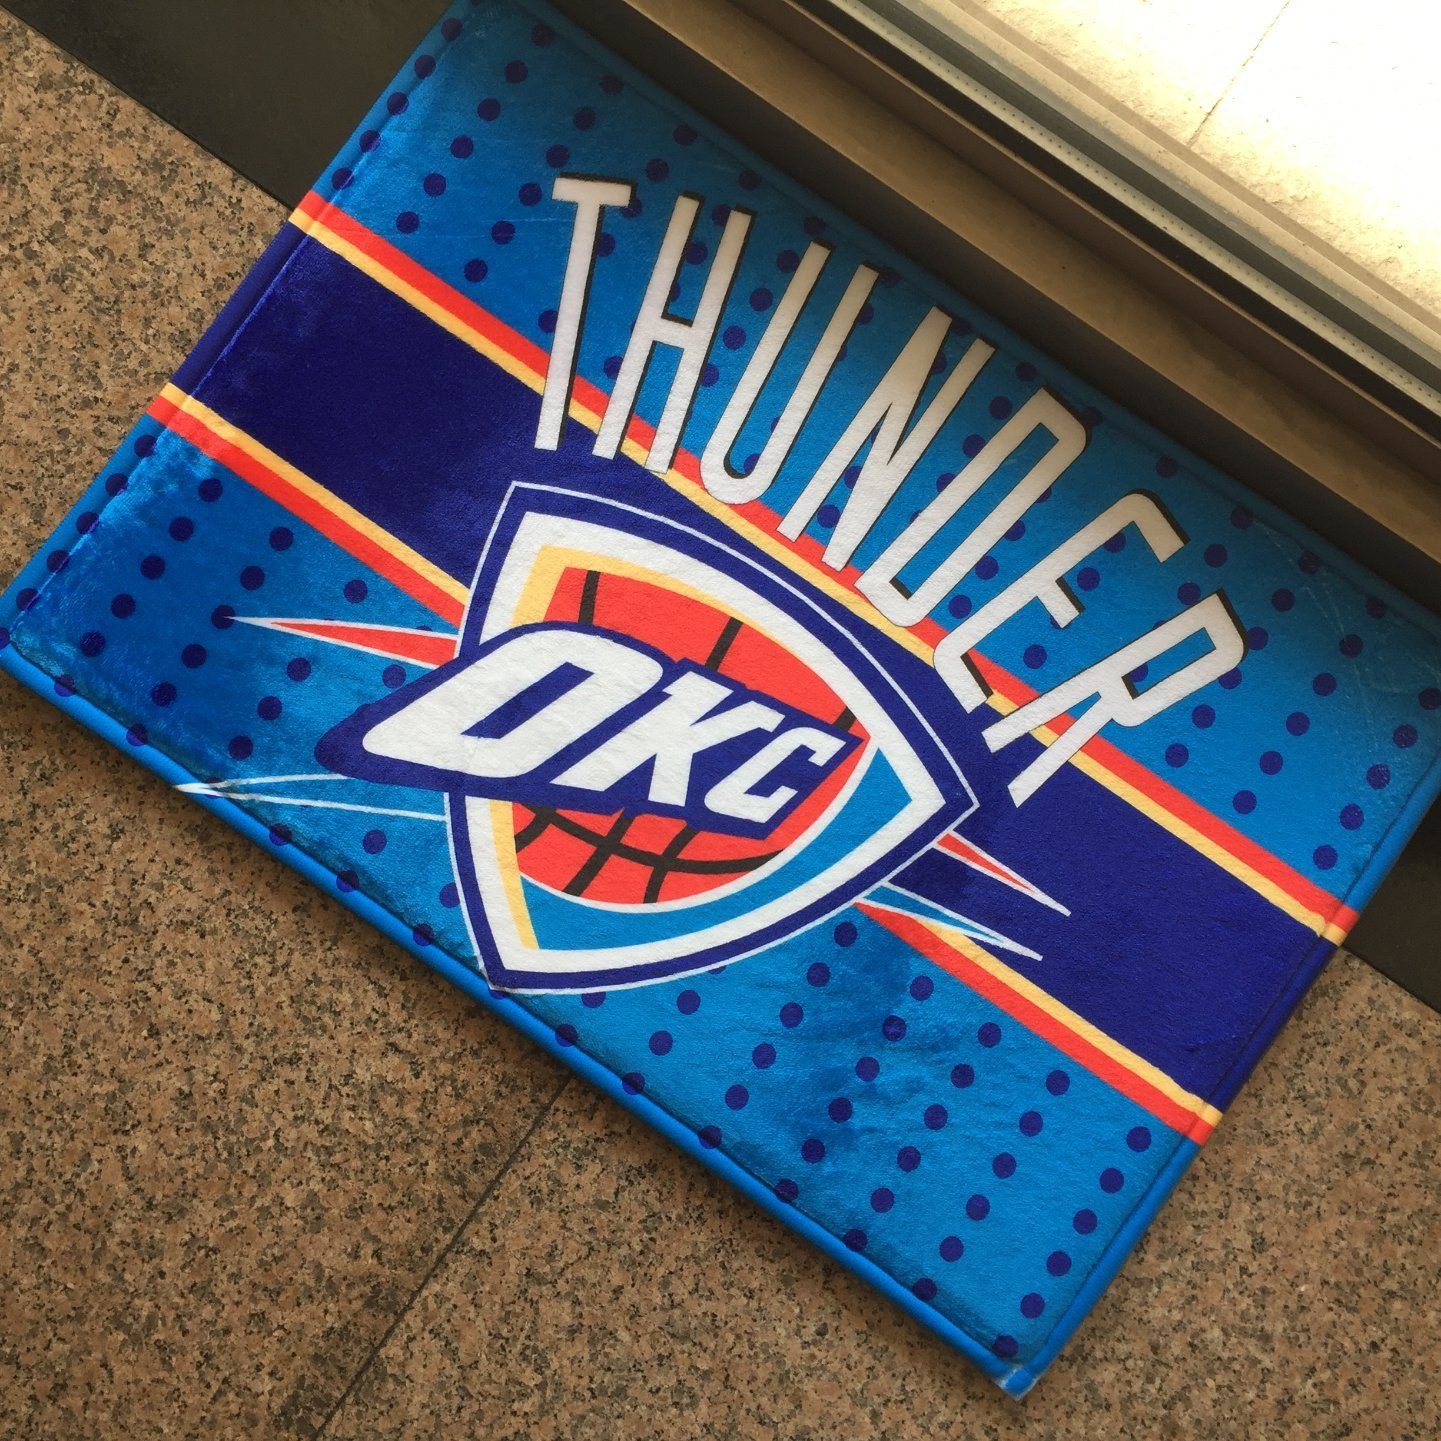 Logo Sport Team Promot Promotional Gifts Advertising Event Giveaways Dodgers Printing/Print Dye Sublimation Indoor Outdoor Door Welcome Entrance Floor Rugs